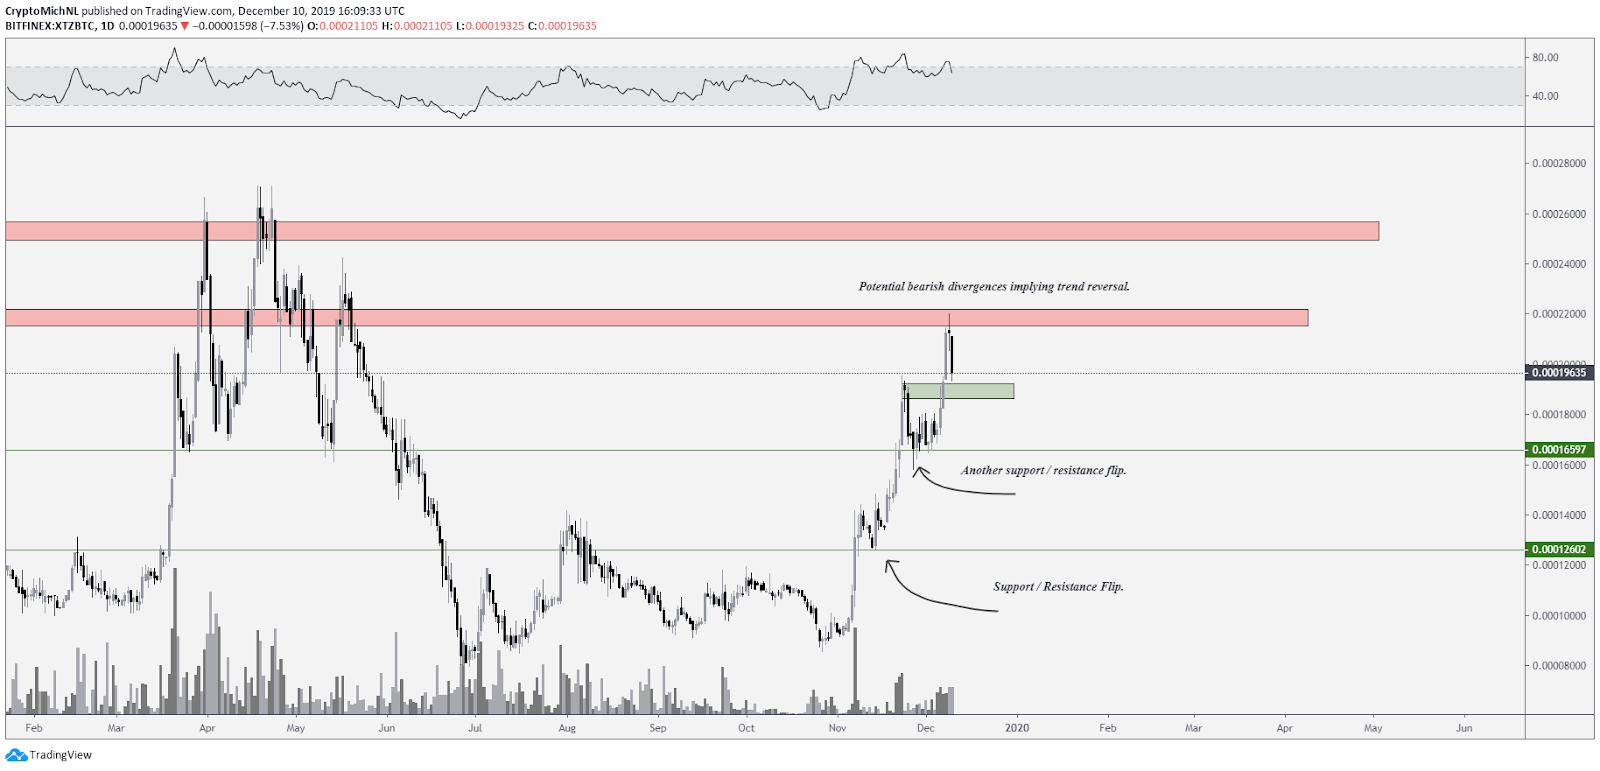 XTZ BTC daily chart. Source: TradingView